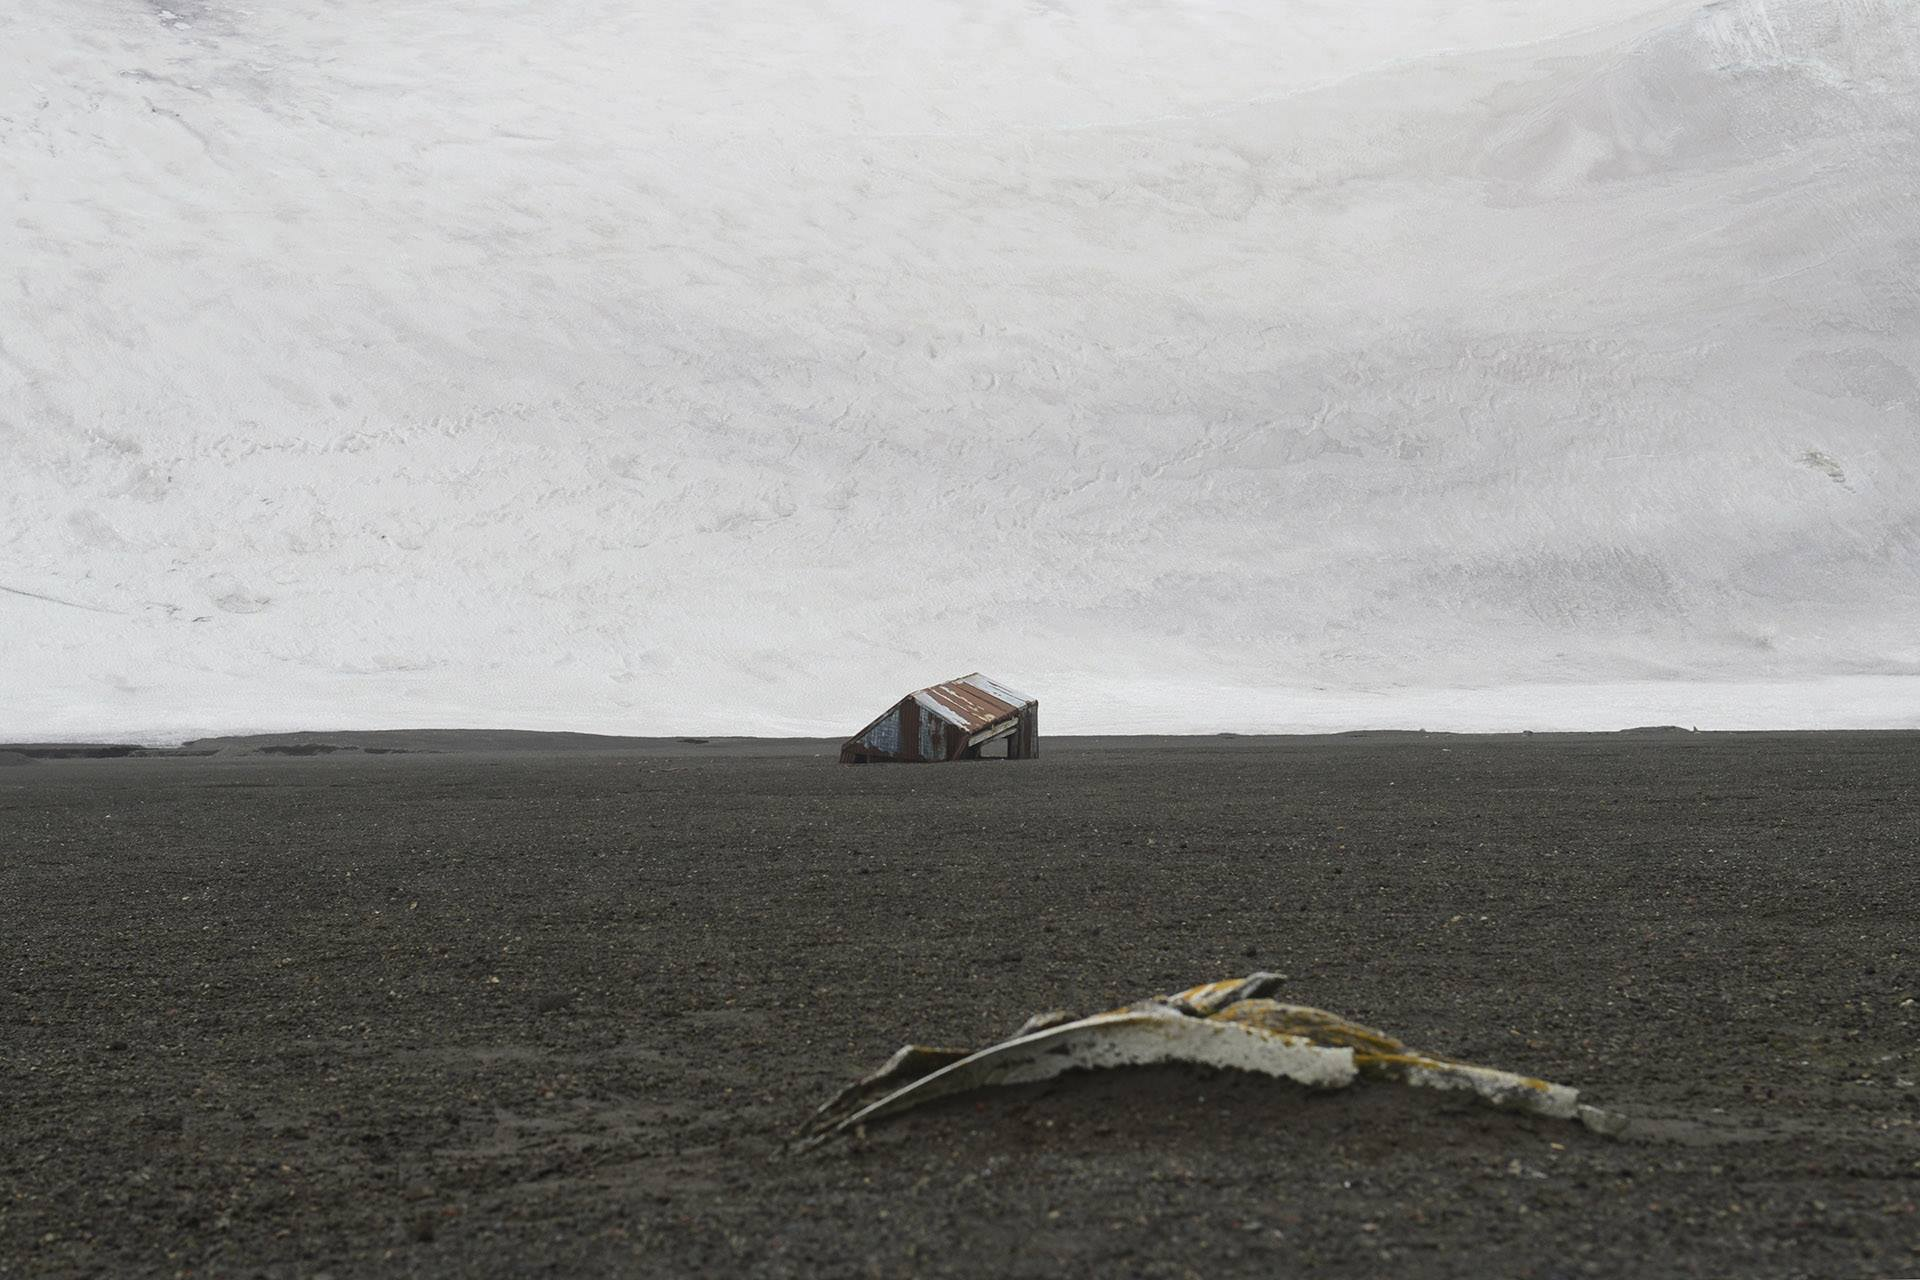 Deception Island, South Shetland Islands, Antractic Ocean III, 2014<br/>